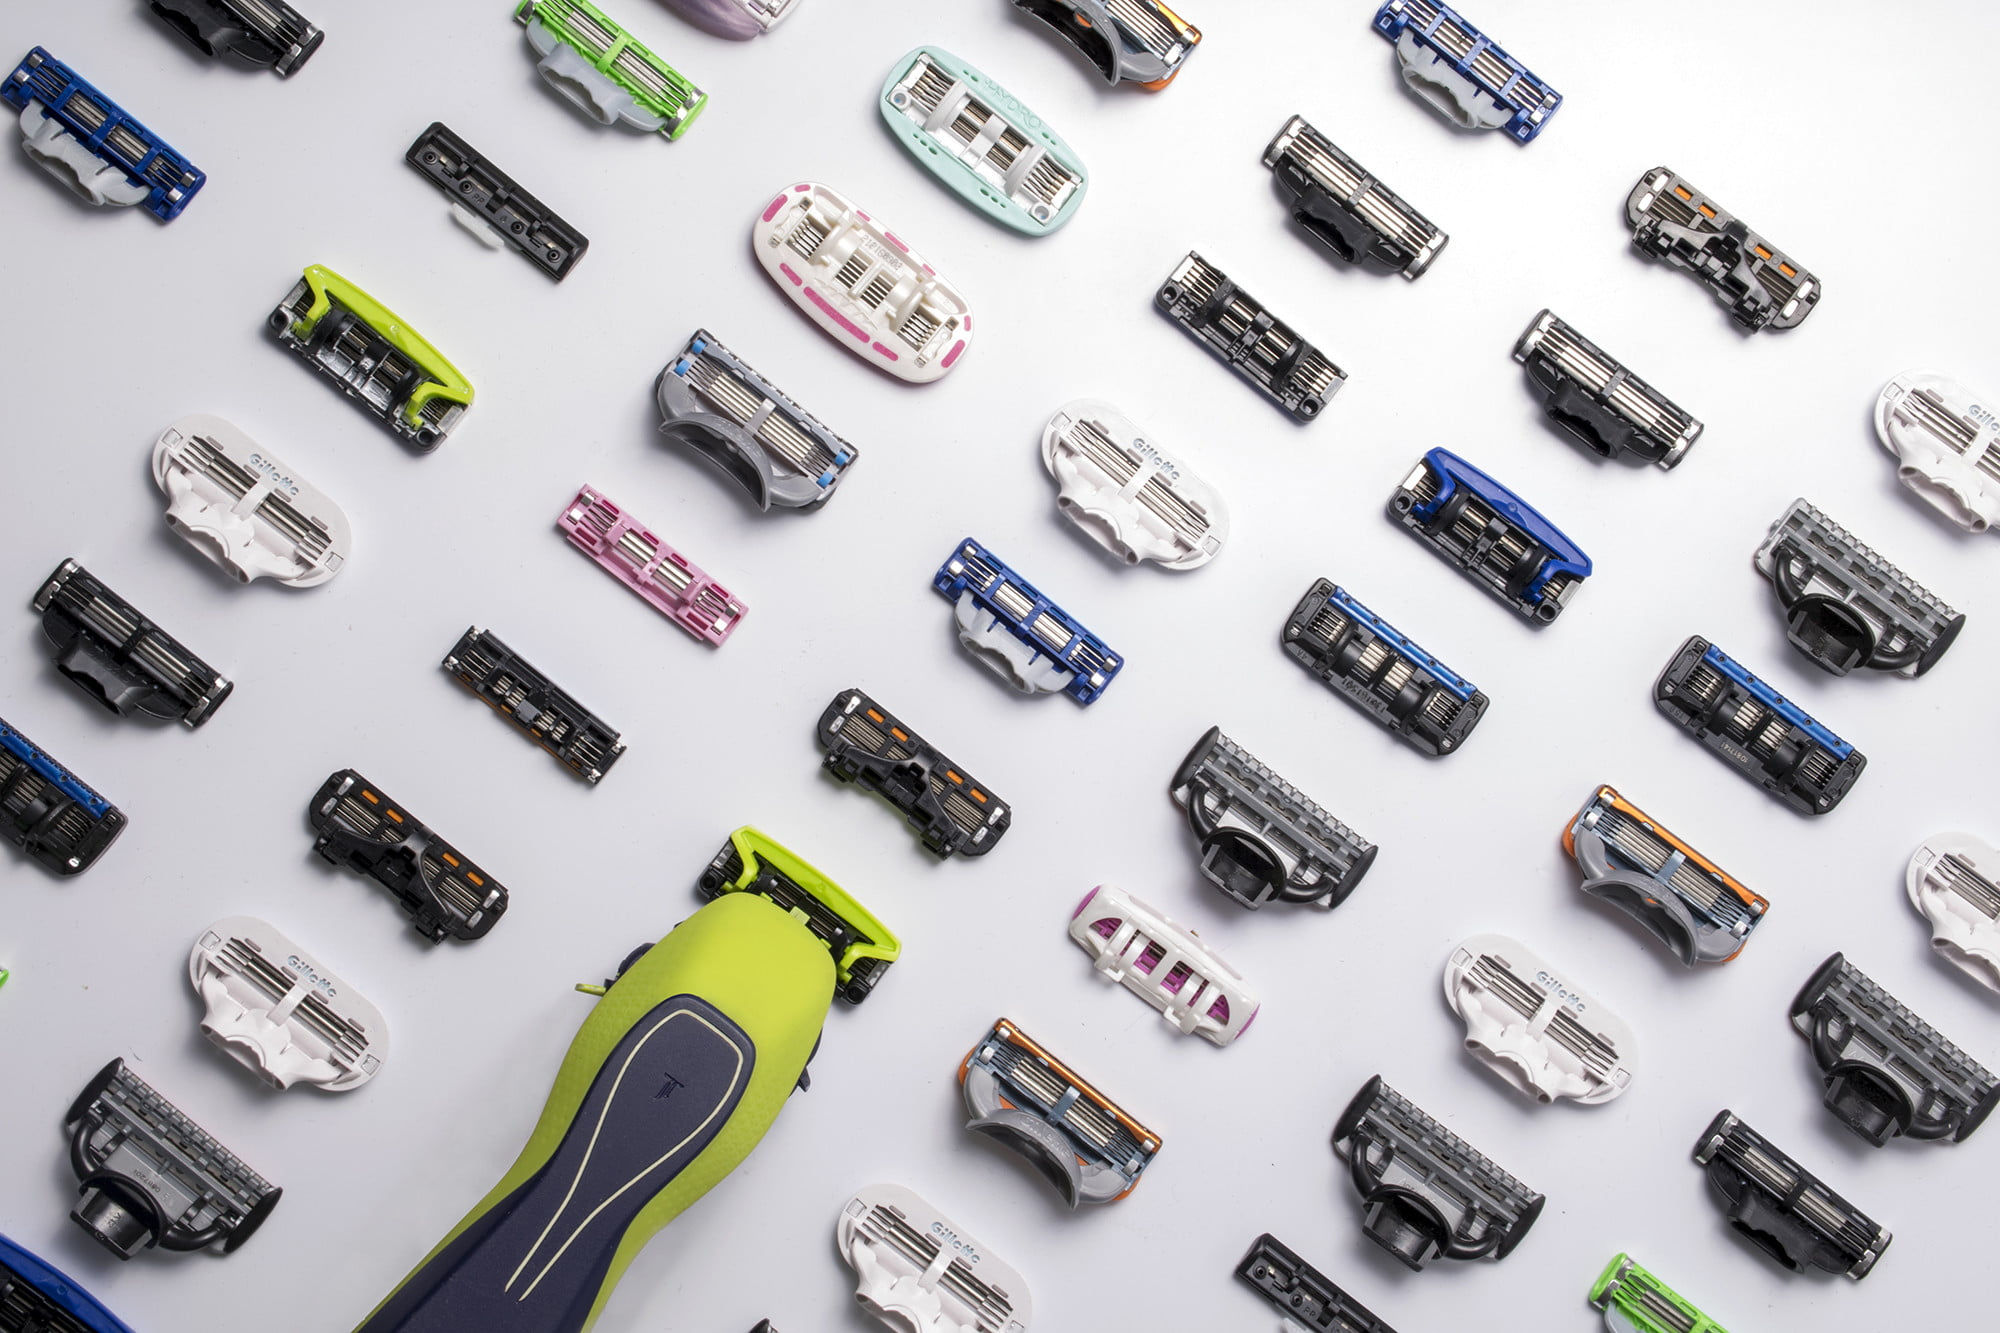 This all-in-one shaving system lets you use over 40 blades from different brands